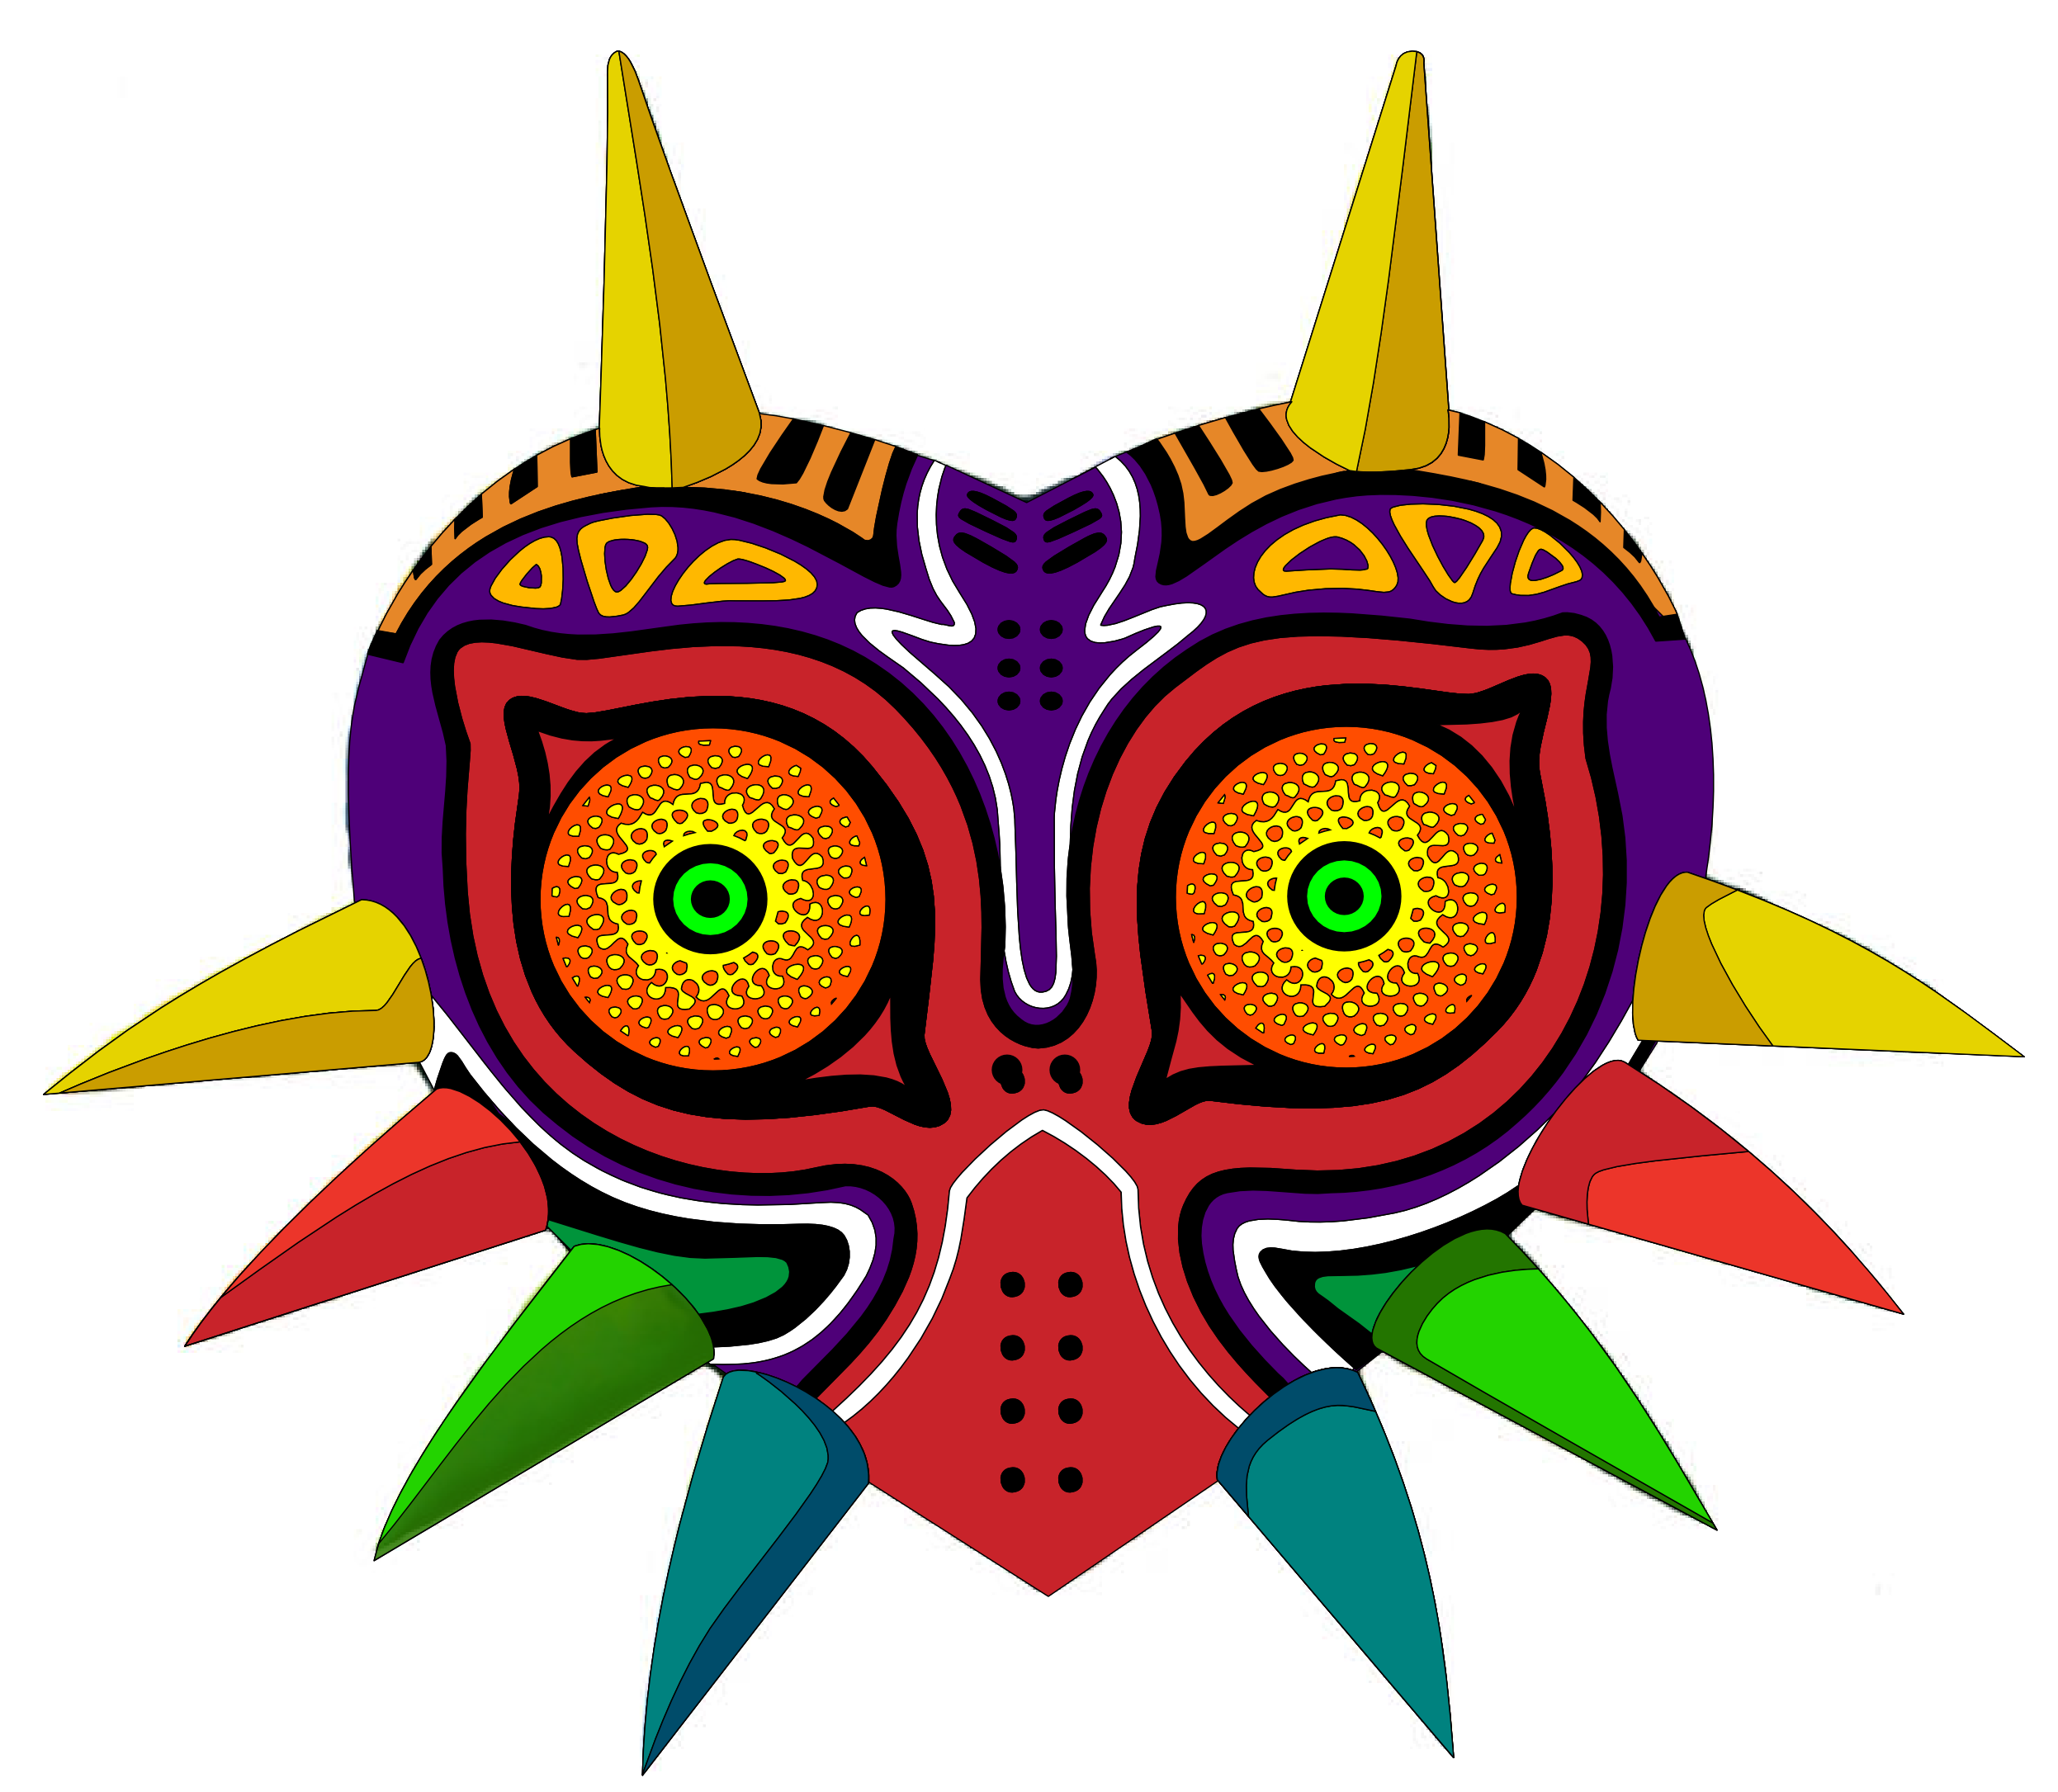 Majora's Mask by RevPixy on DeviantArt.